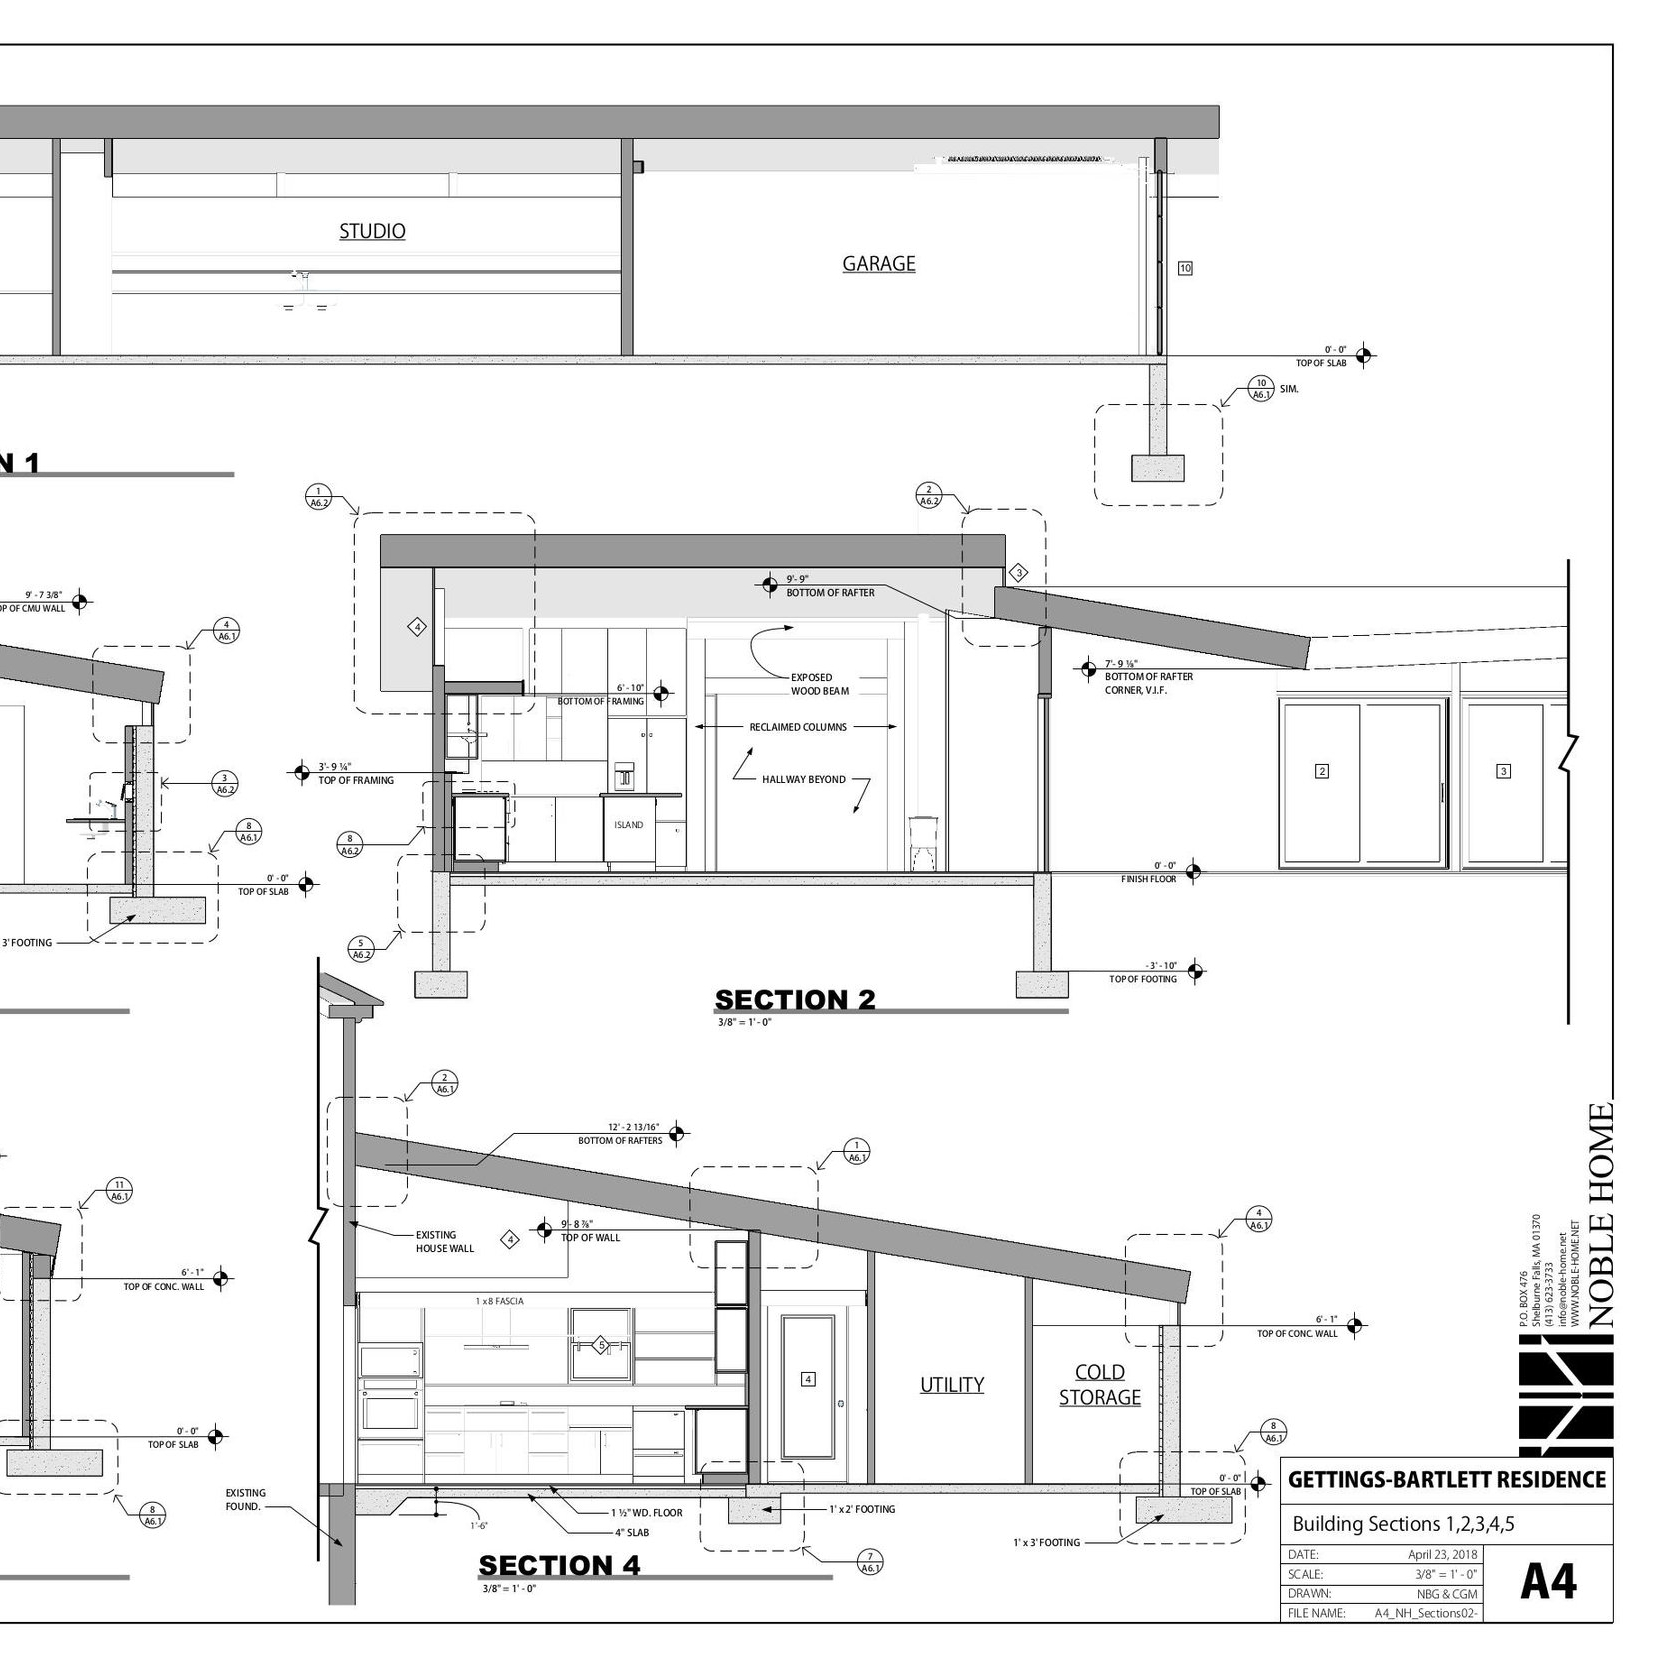 construction drawing details